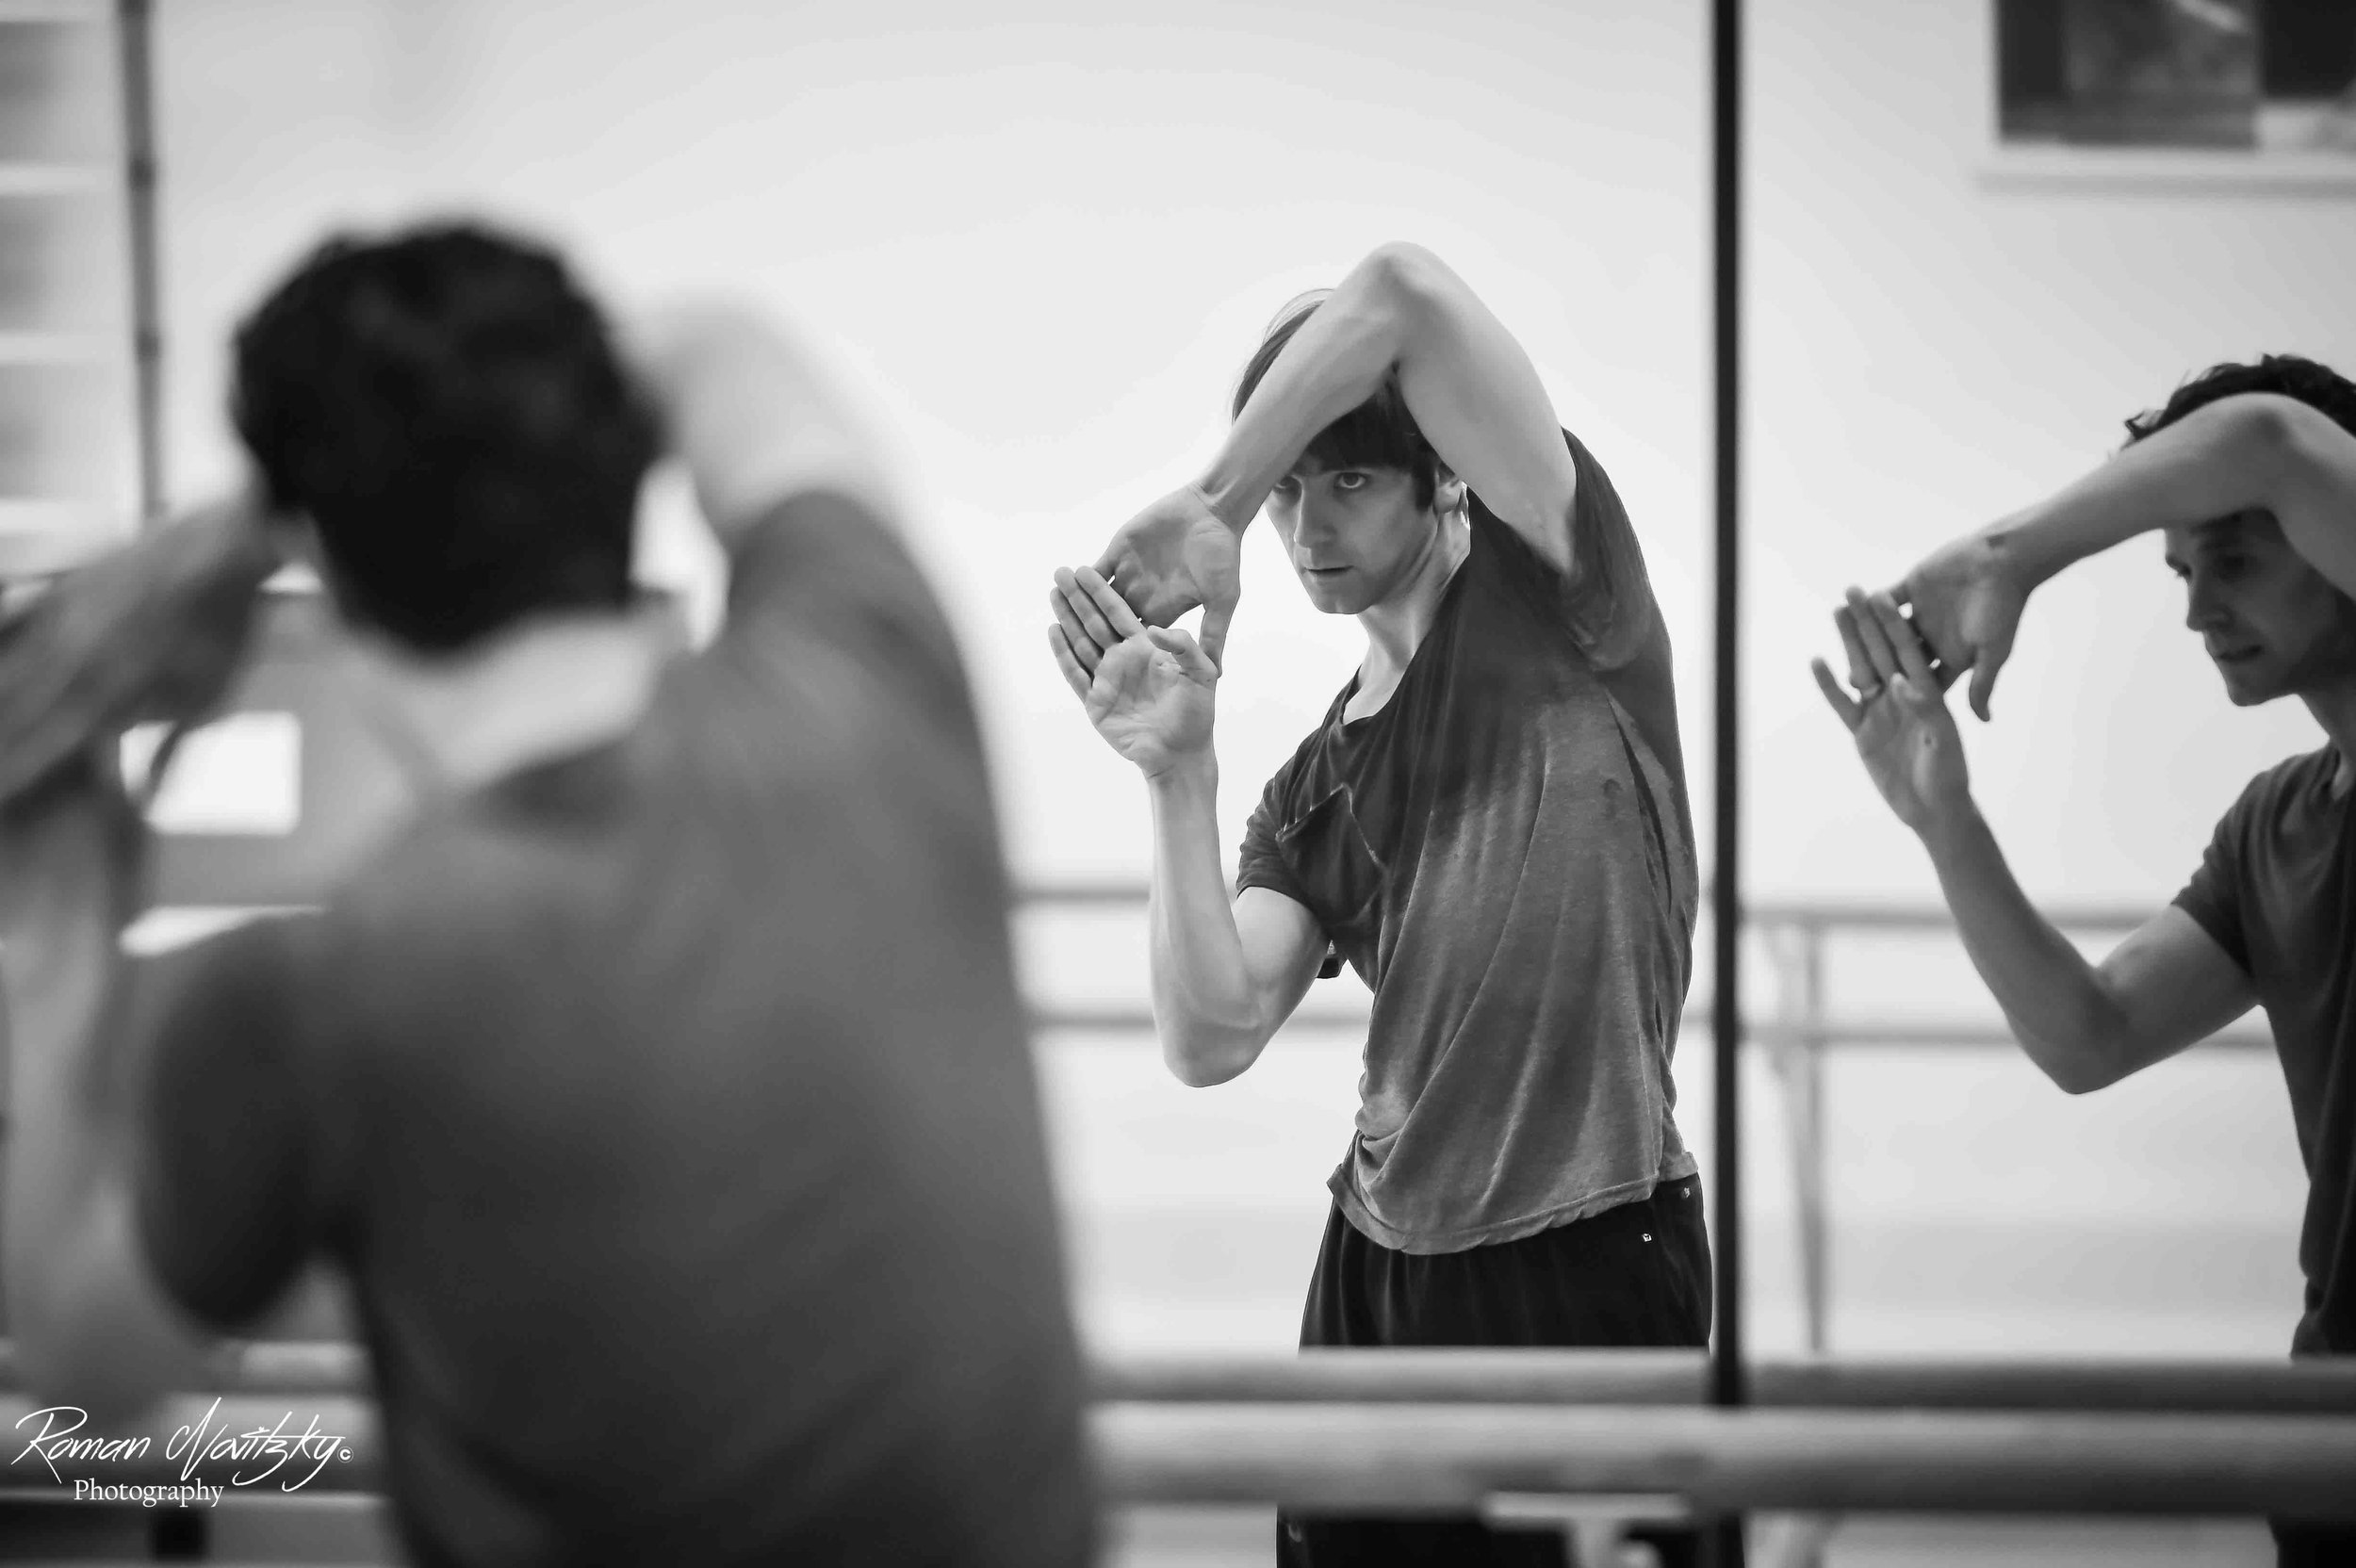 Guillaume Cote and Friedemann Vogel in rehearsals (c) Roman Novitzky